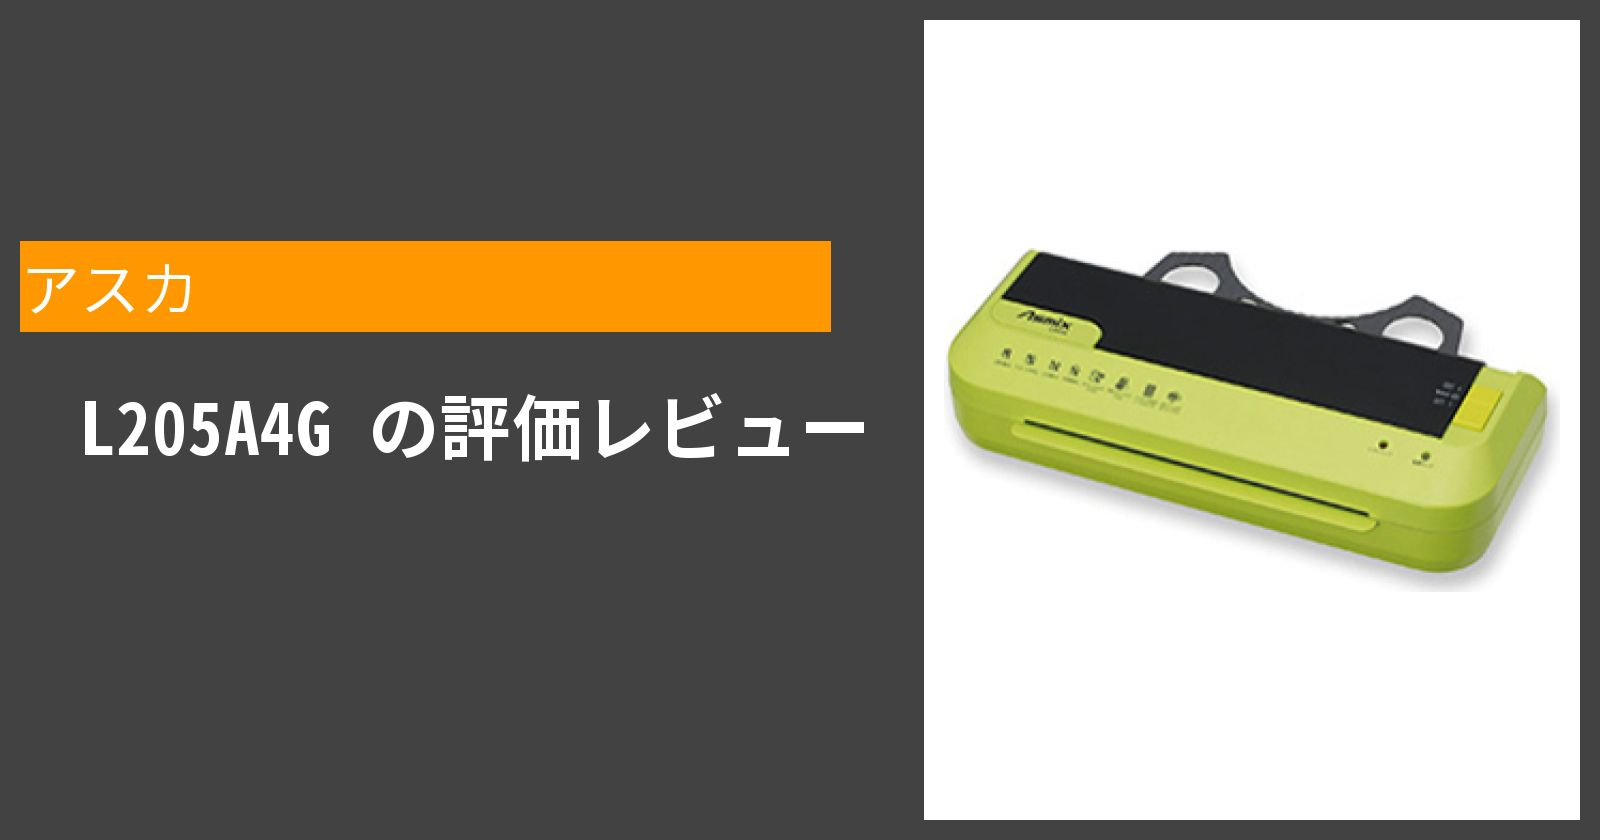 L205A4Gを徹底評価